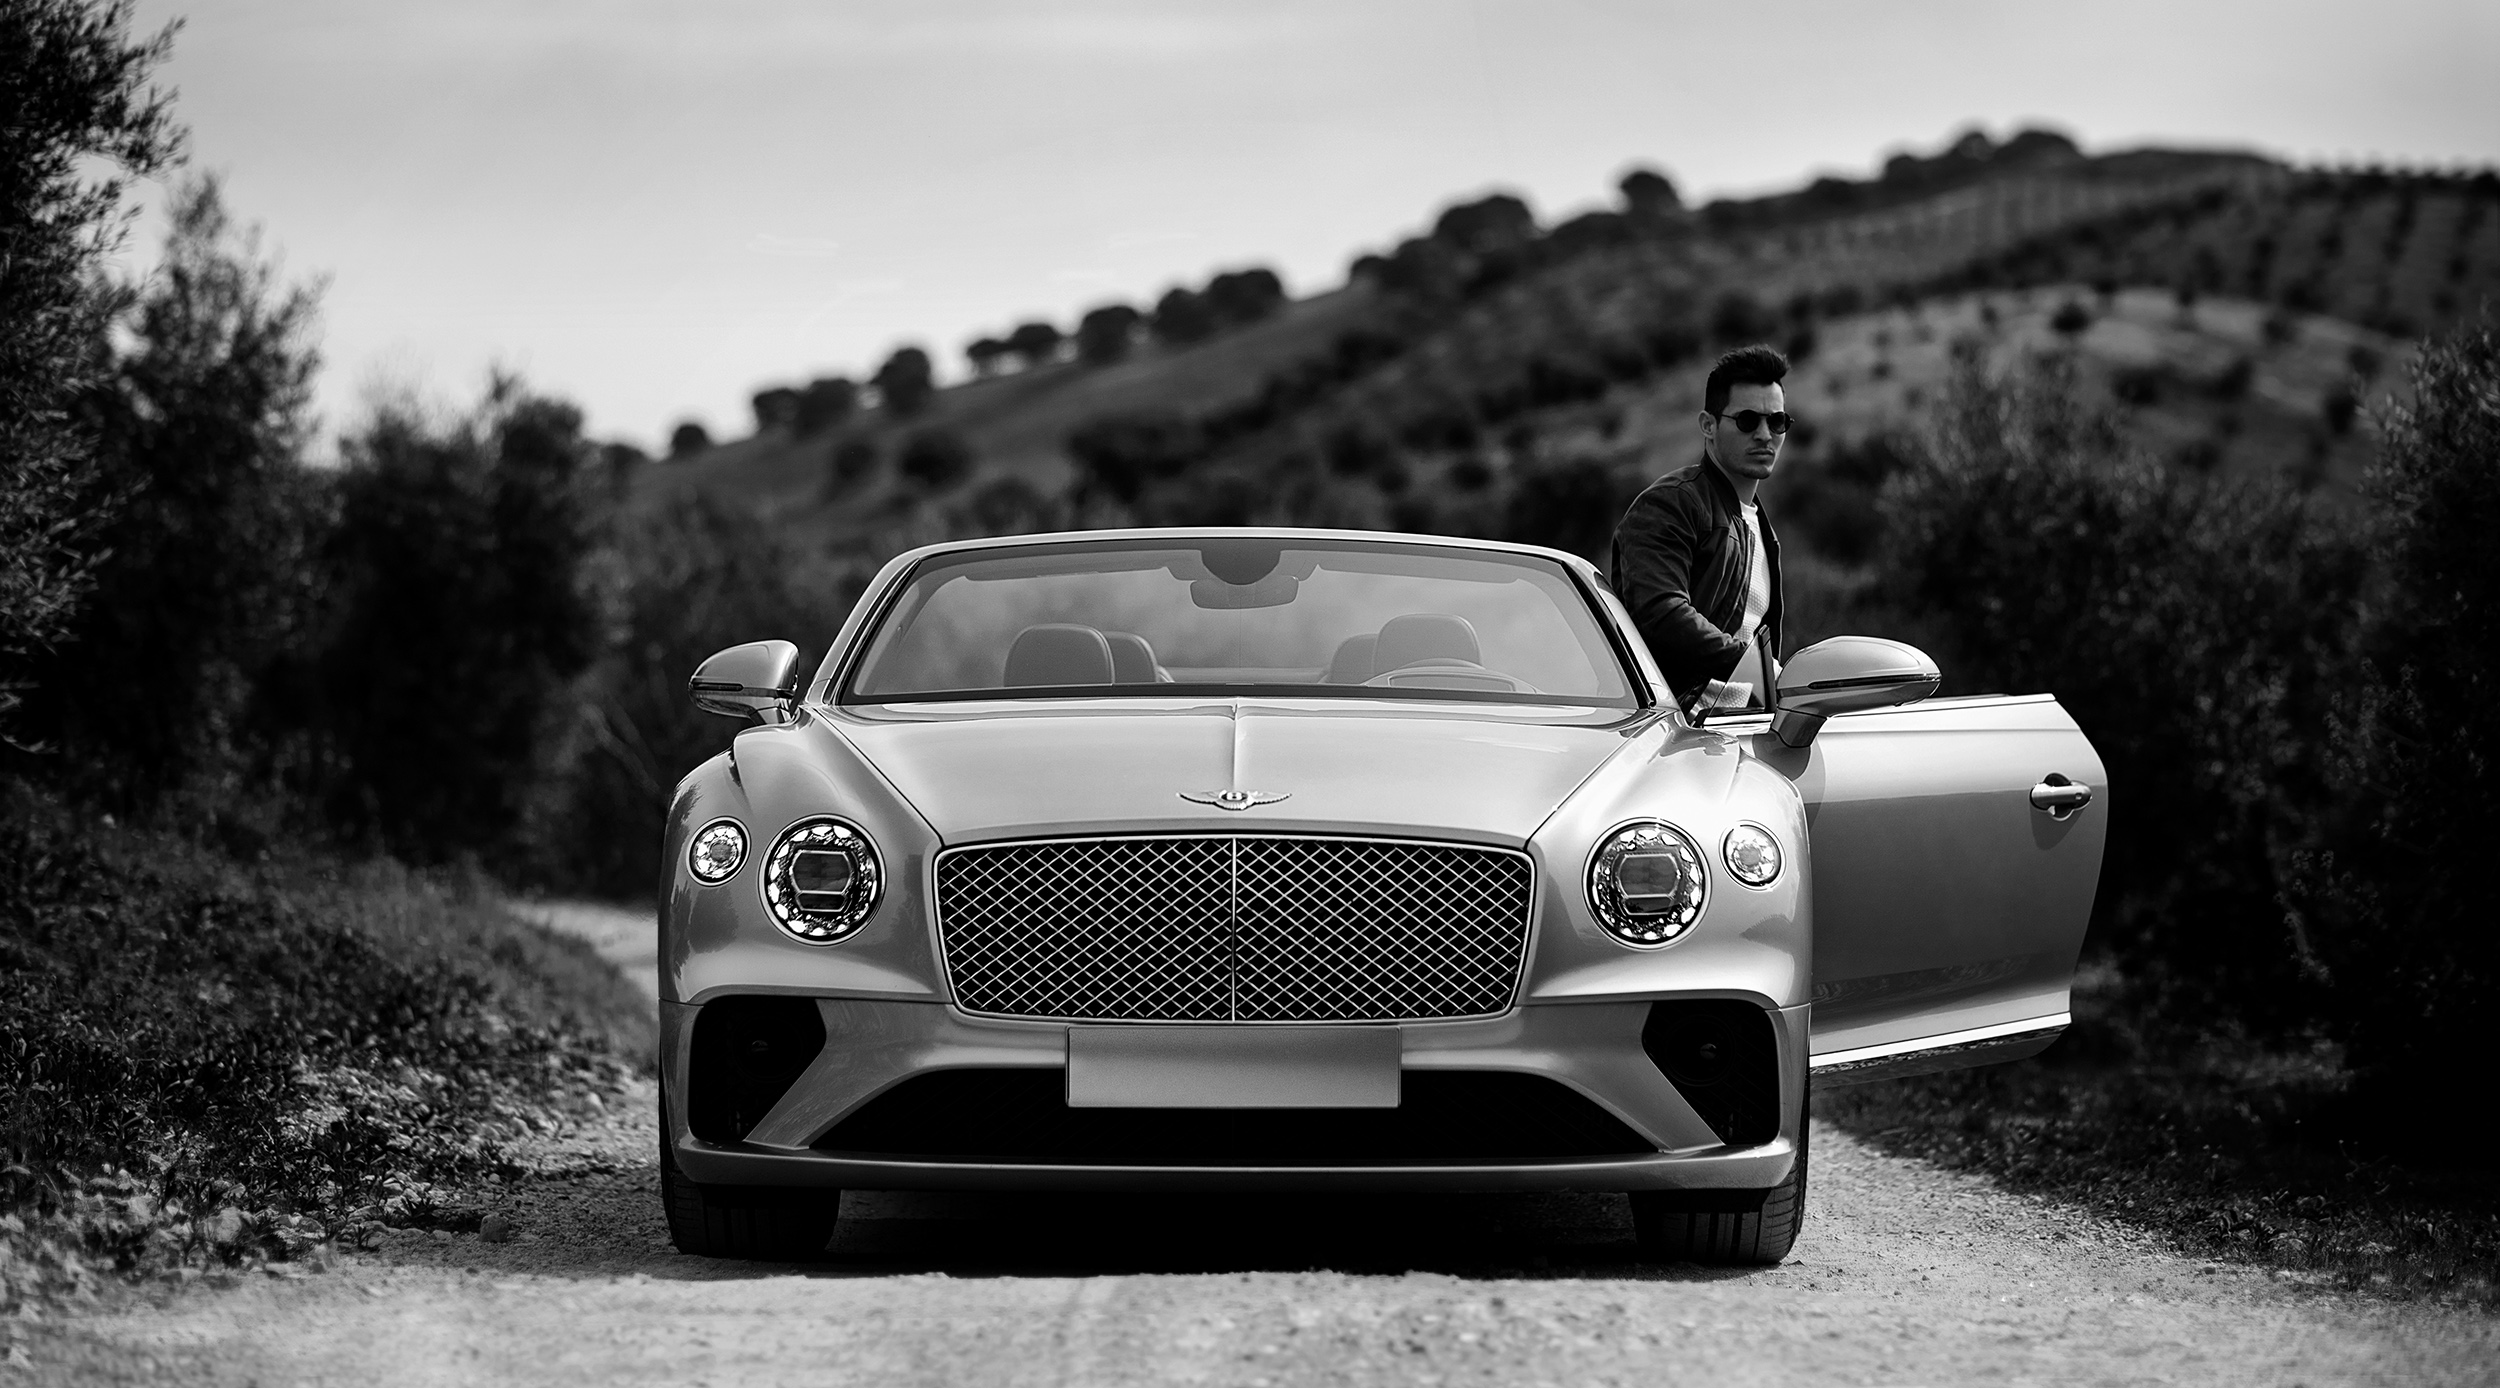 Apr 2019 2019 Continental Gt Convertible Gran Touring In Spain Avid Followers Of My Adventures Will Recall The Recent Opportunity I Was Given To Experience The Stunning 2019 Bentley Continental Gt A Few Months Prior To Its Global Release Driving On Some